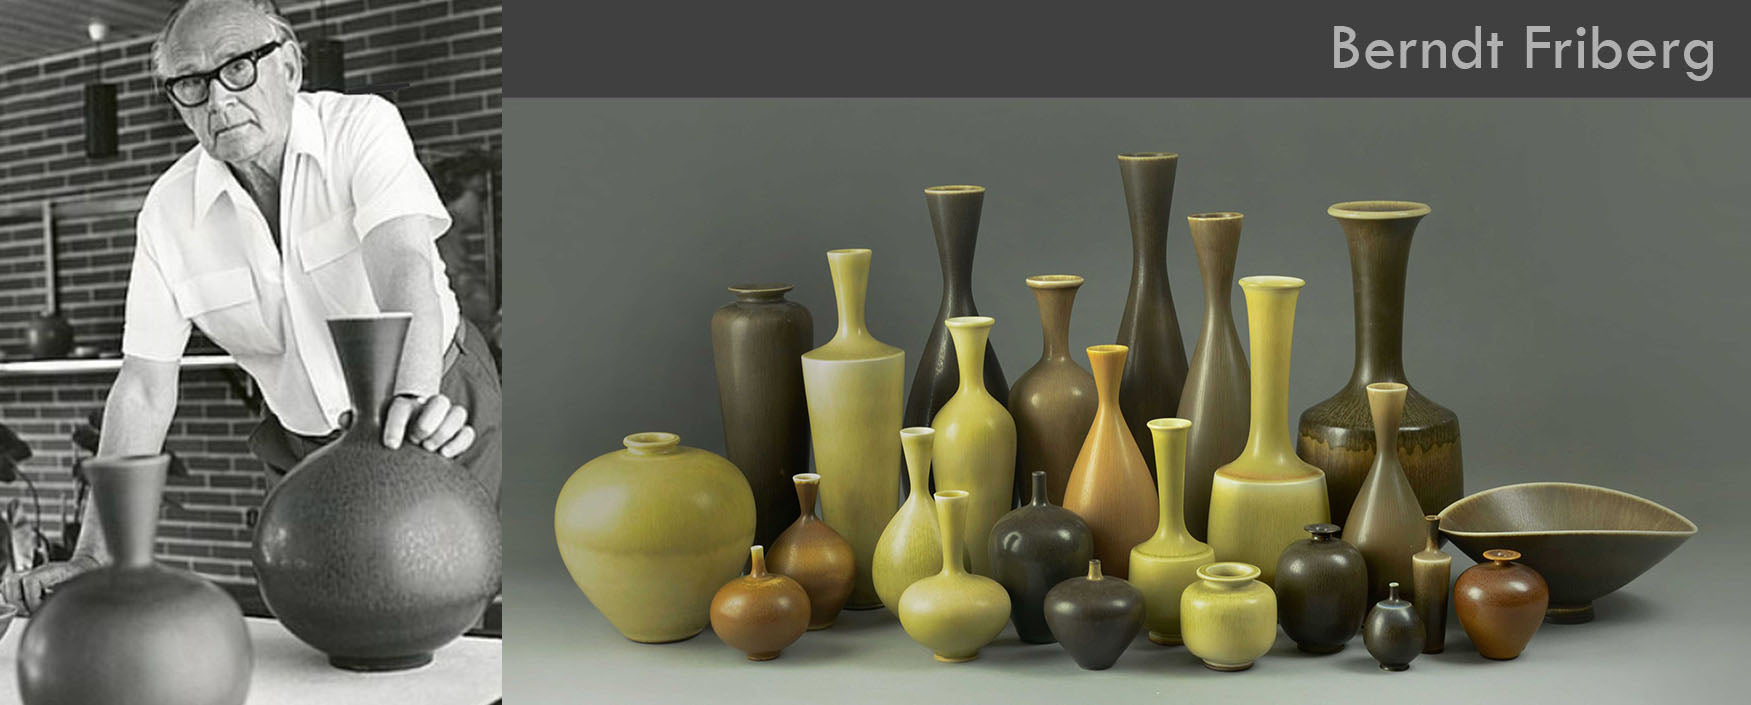 Berndt Friberg Ceramics for sale, Gustavsberg, Sweden, 1940s-70s